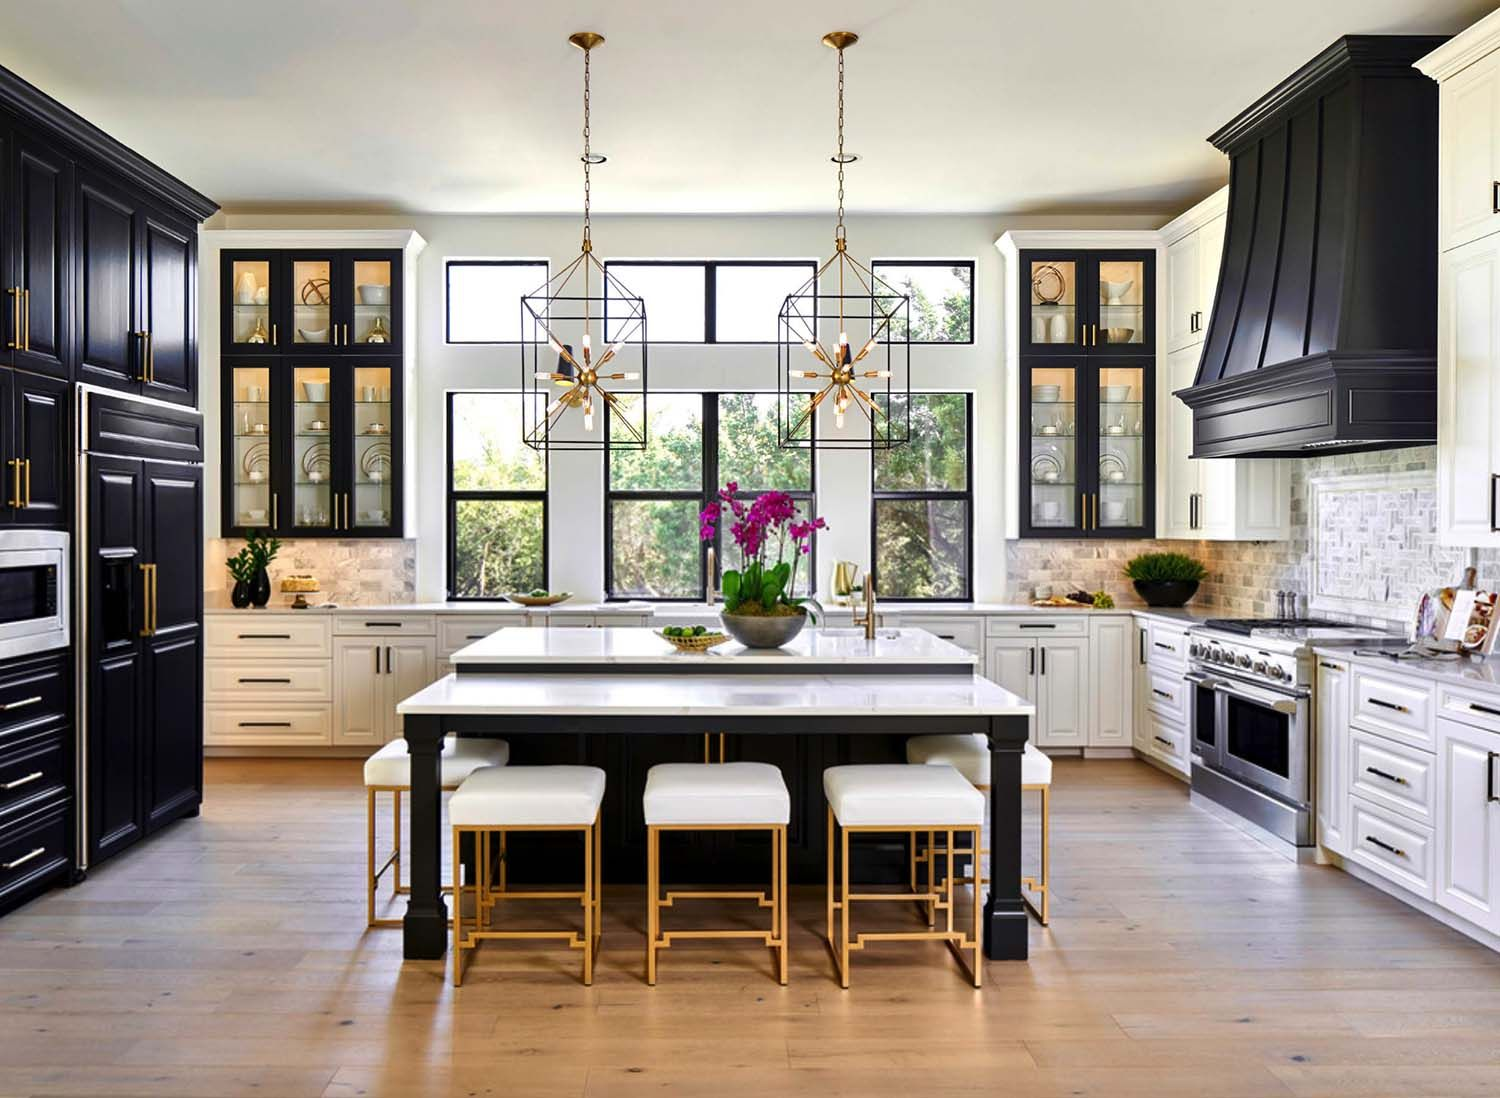 25 absolutely gorgeous transitional style kitchen ideas houses rh pinterest es